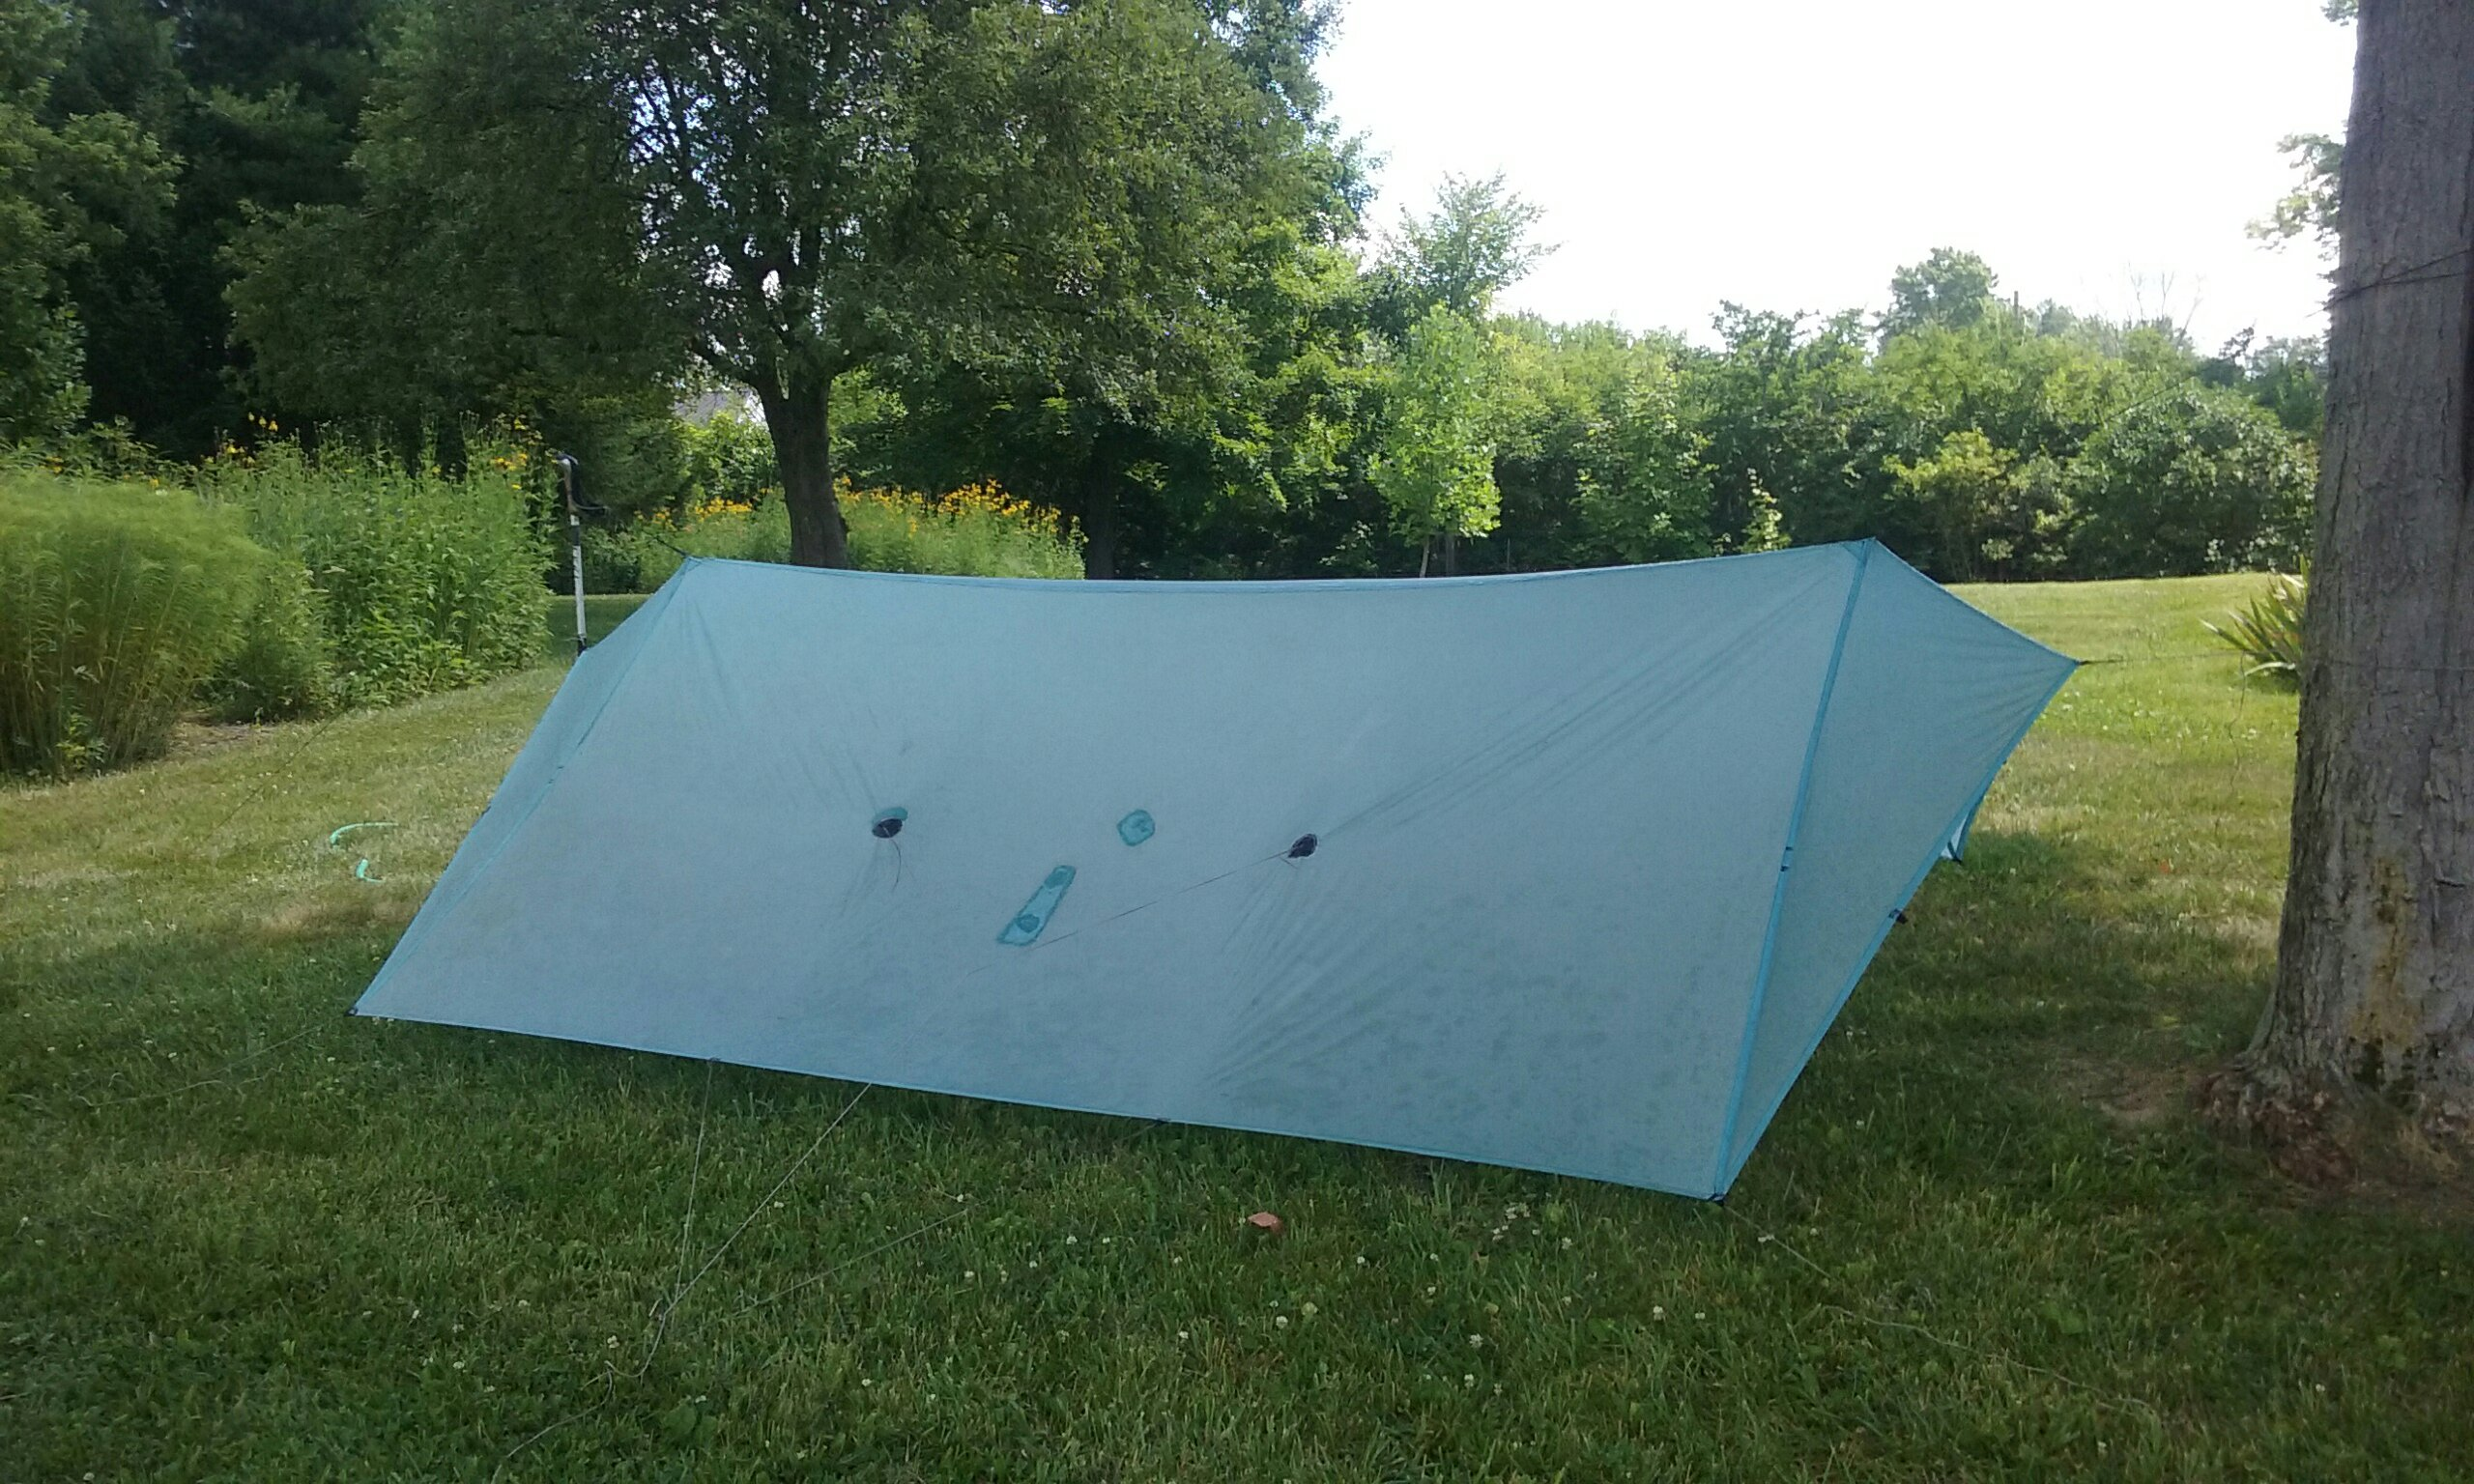 Light blue tarp on a lawn